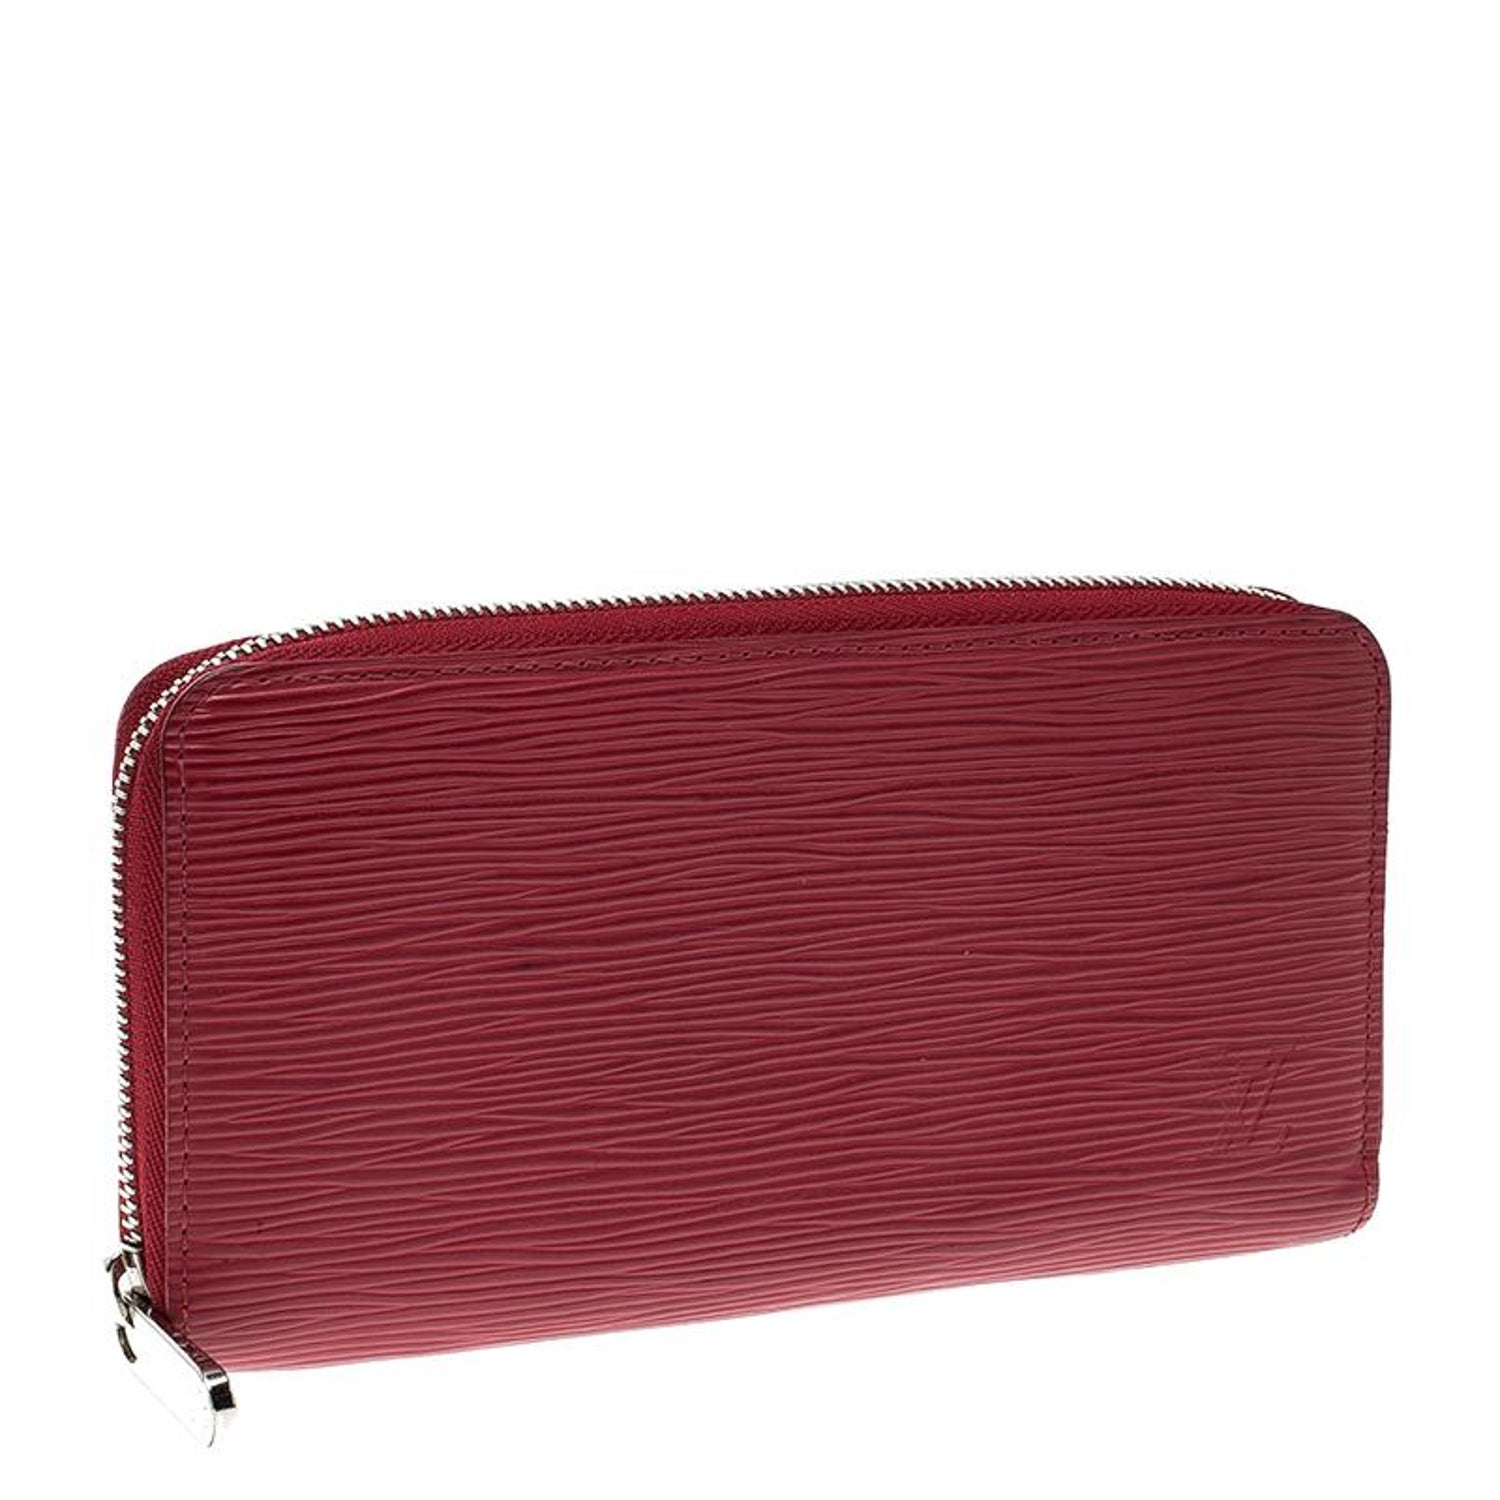 2bfd49e6e721 Louis Vuitton Red Epi Leather Zippy Wallet For Sale at 1stdibs